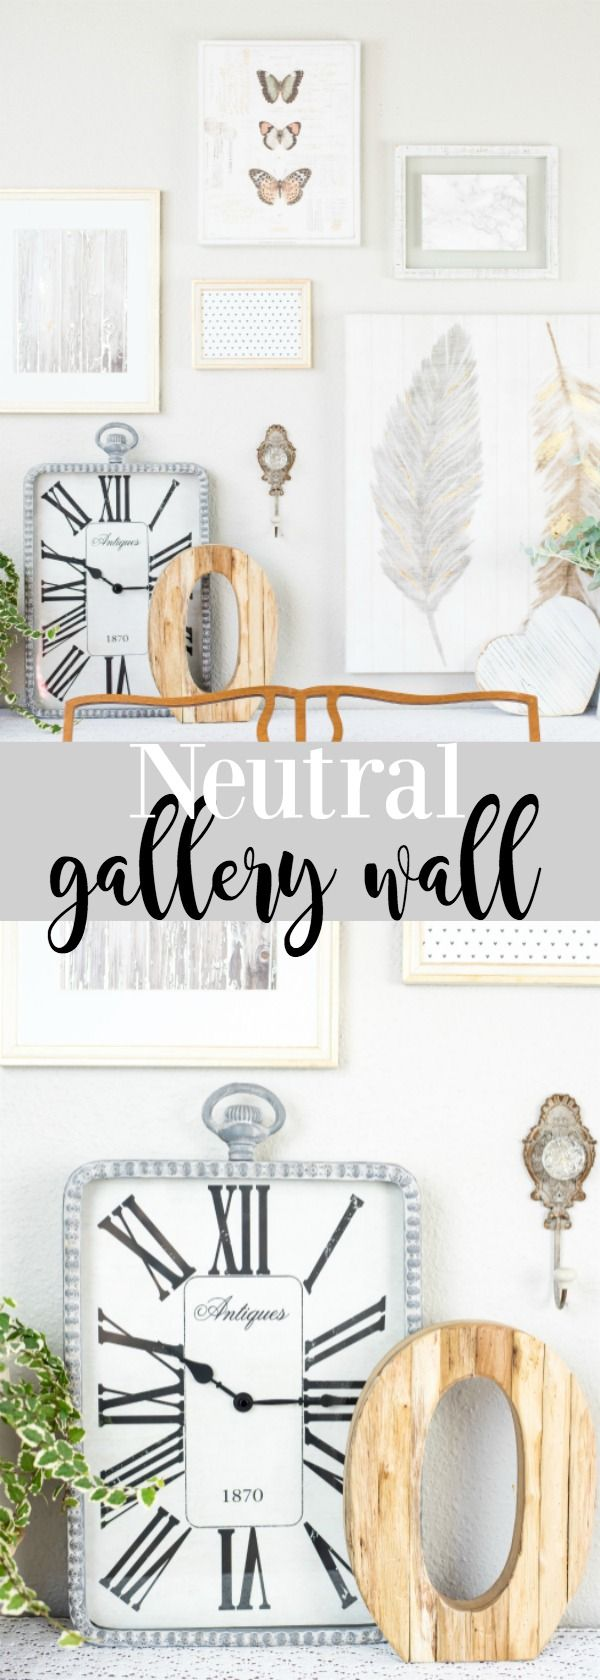 Neutral Gallery Wall Ideas from MichaelsMakers A Pumpkin And A Princess